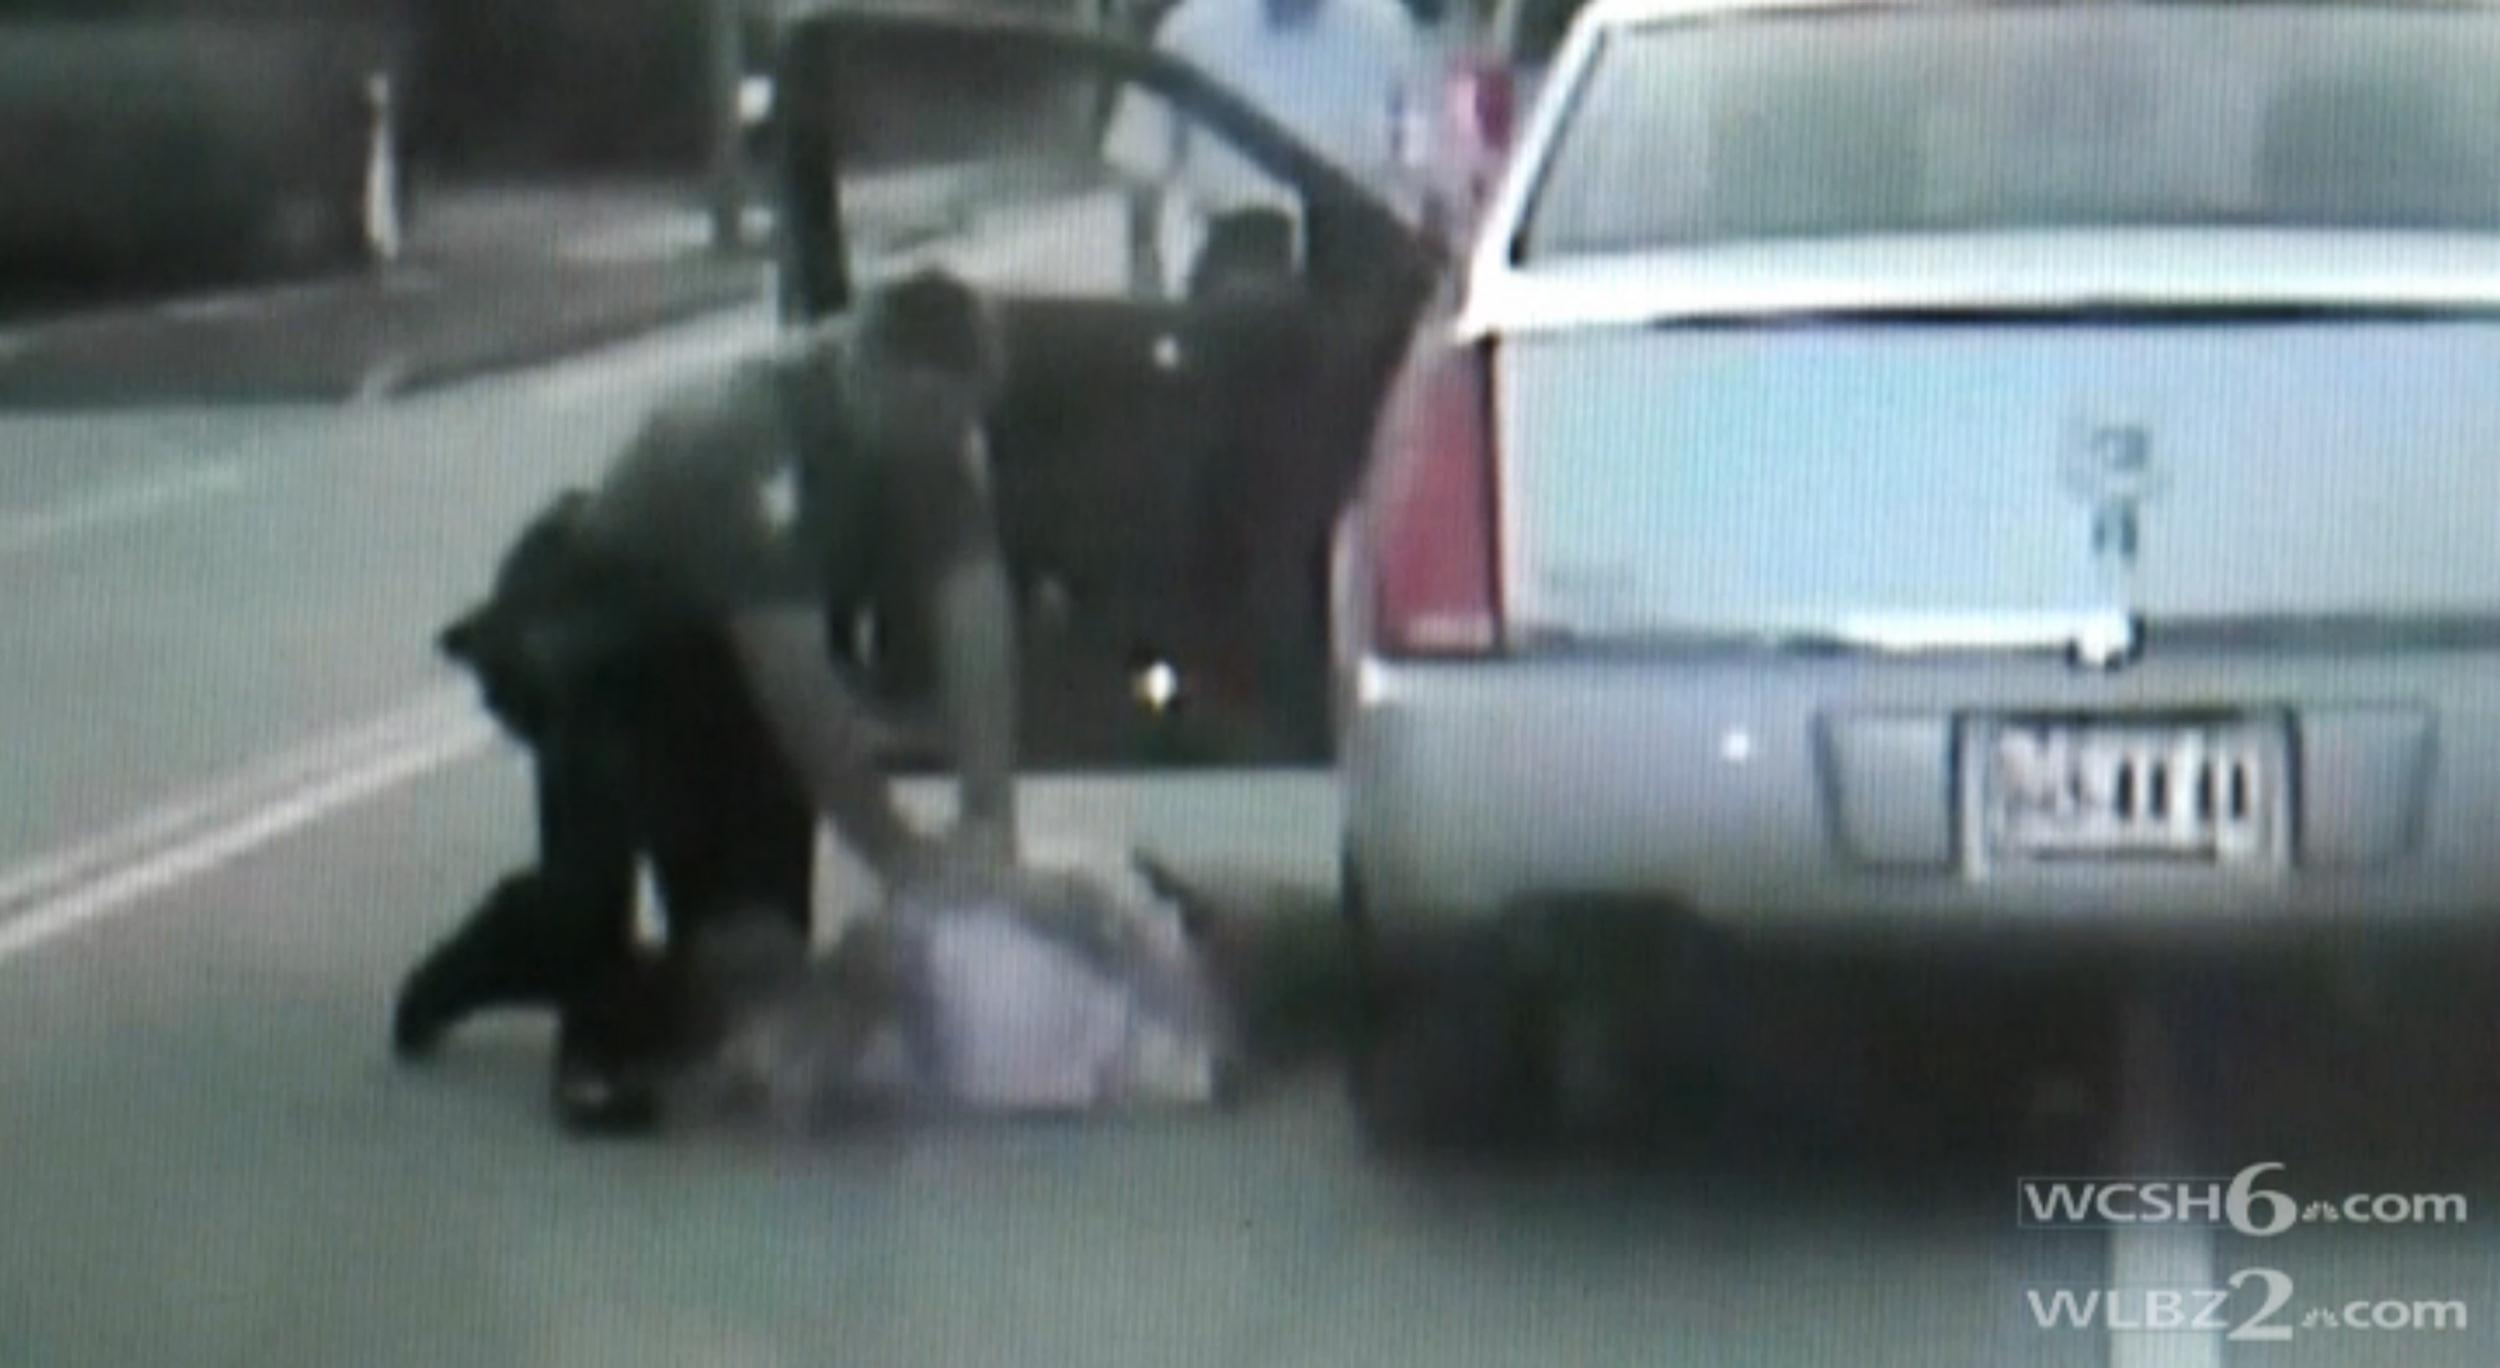 Image: A police officer takes action when a man he pulls over during a traffic stop goes into cardiac arrest